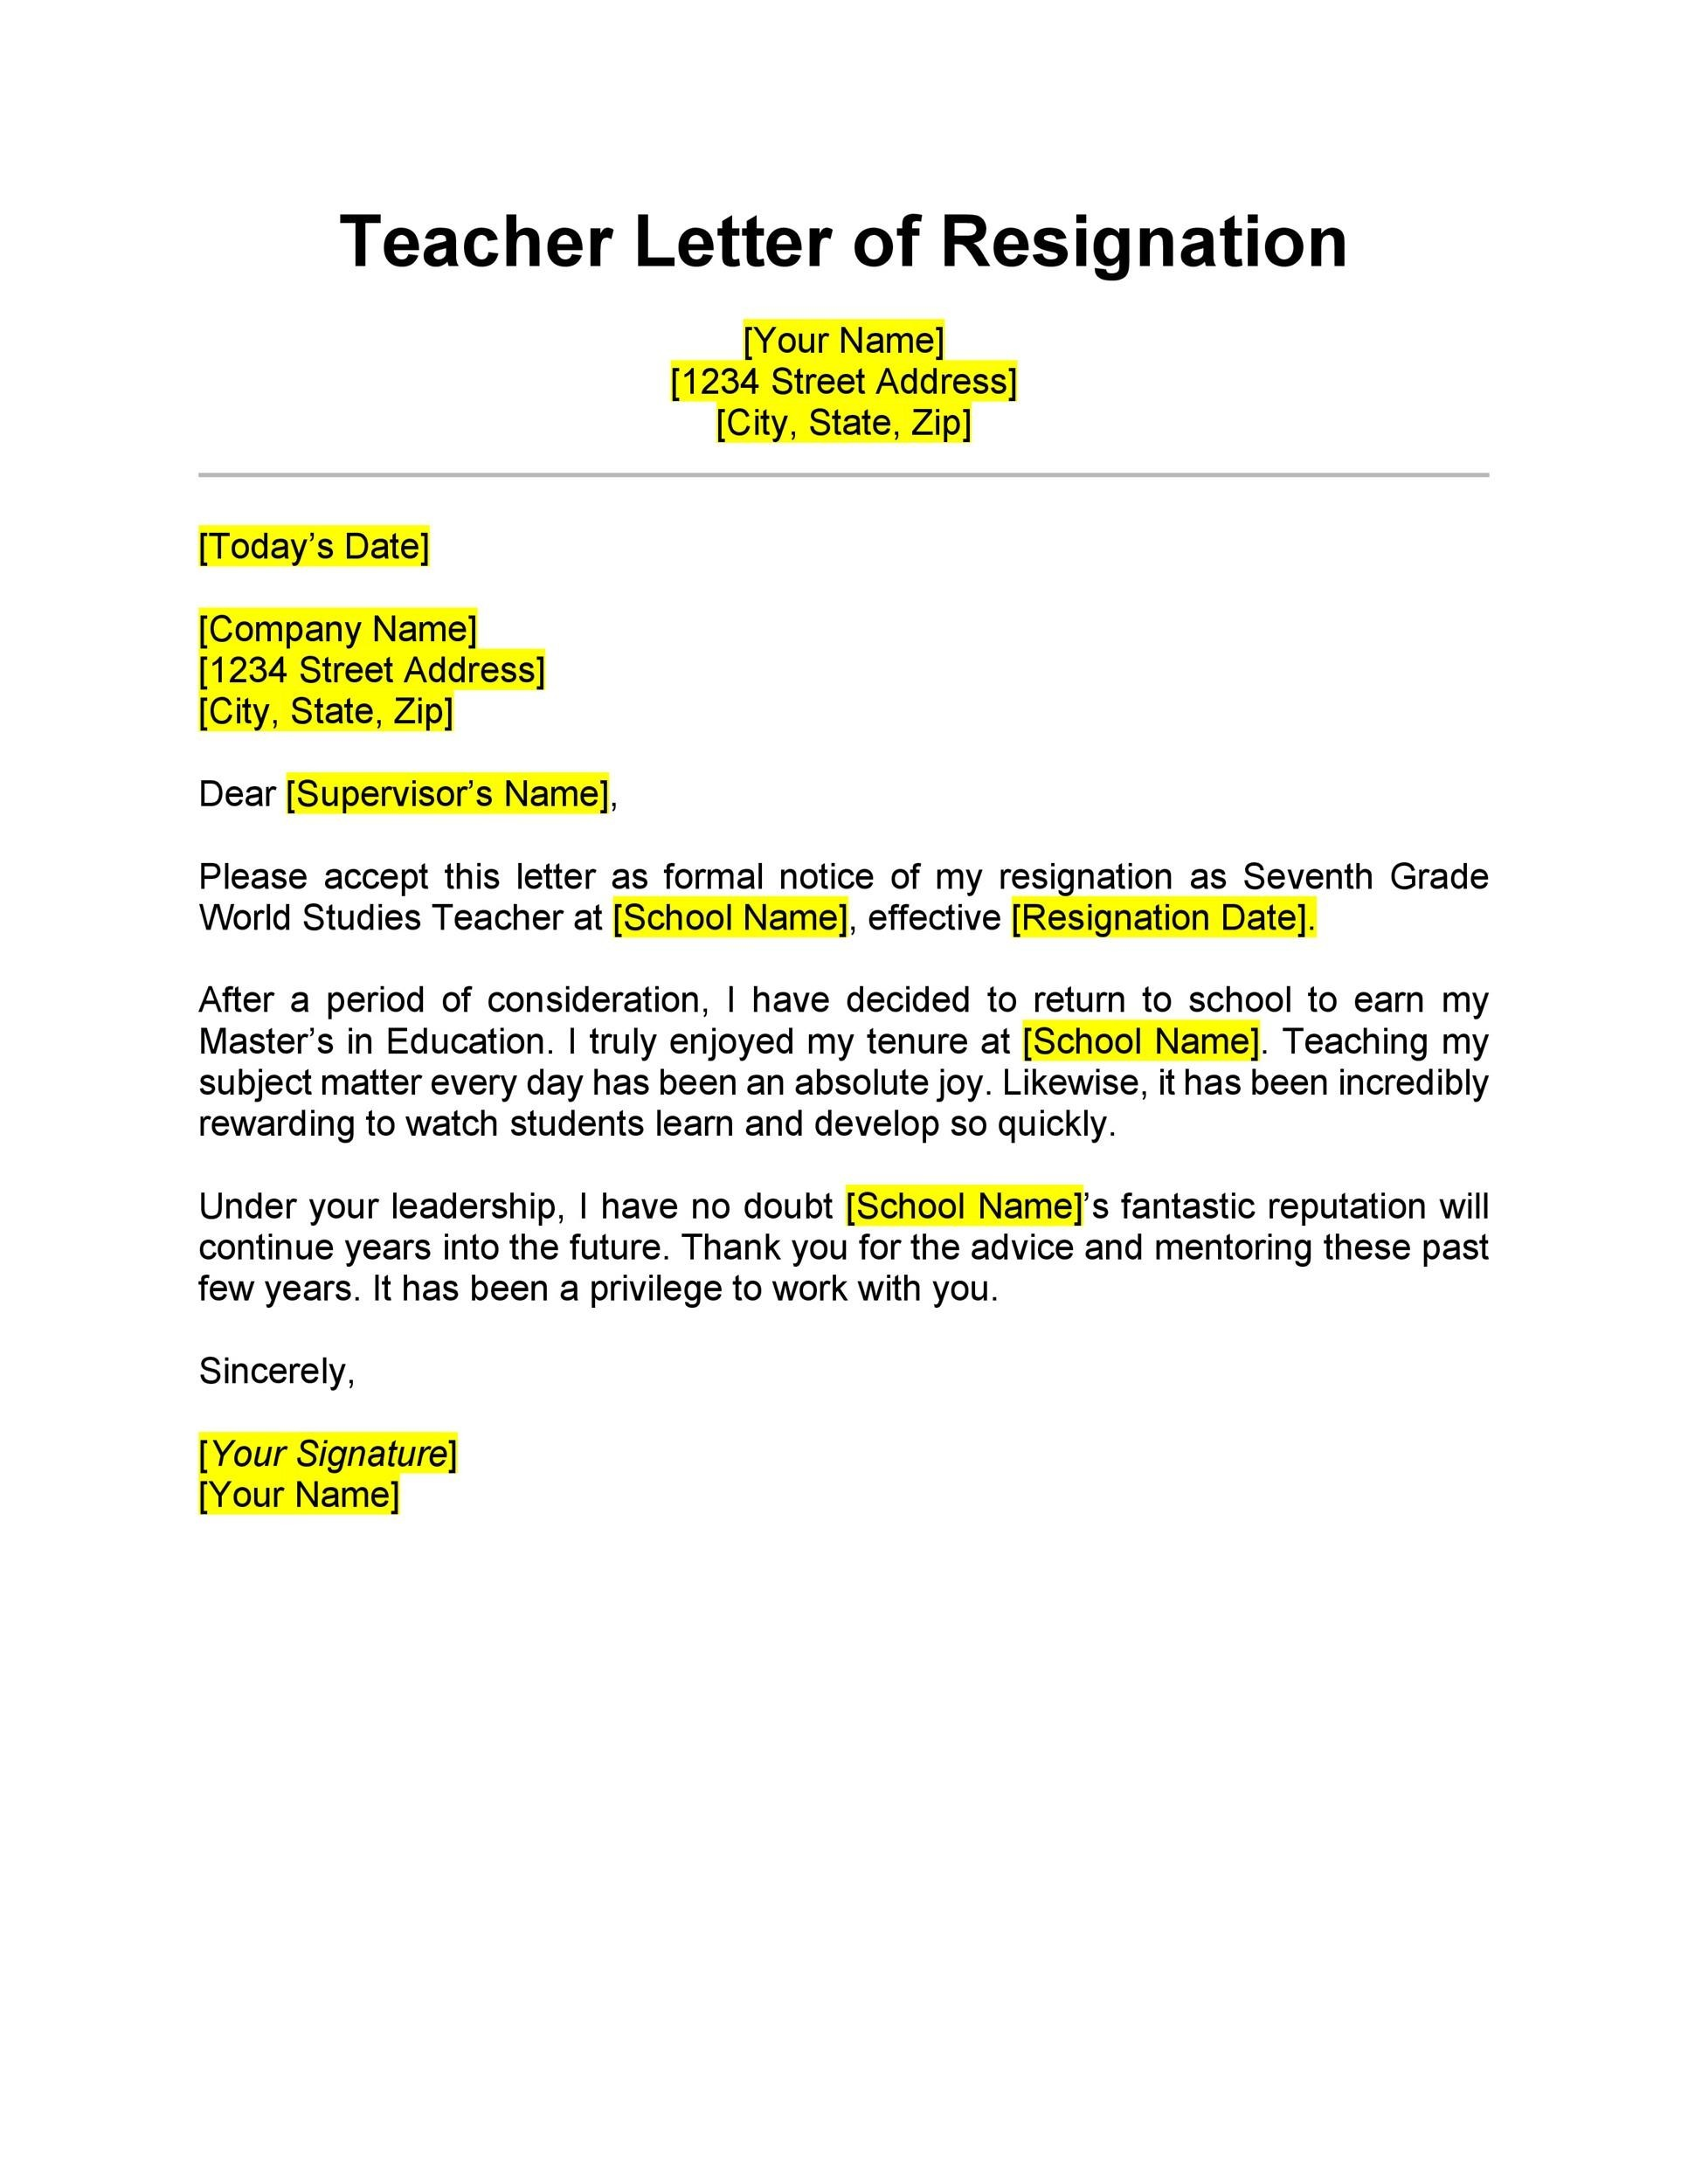 Free teacher resignation letter 05